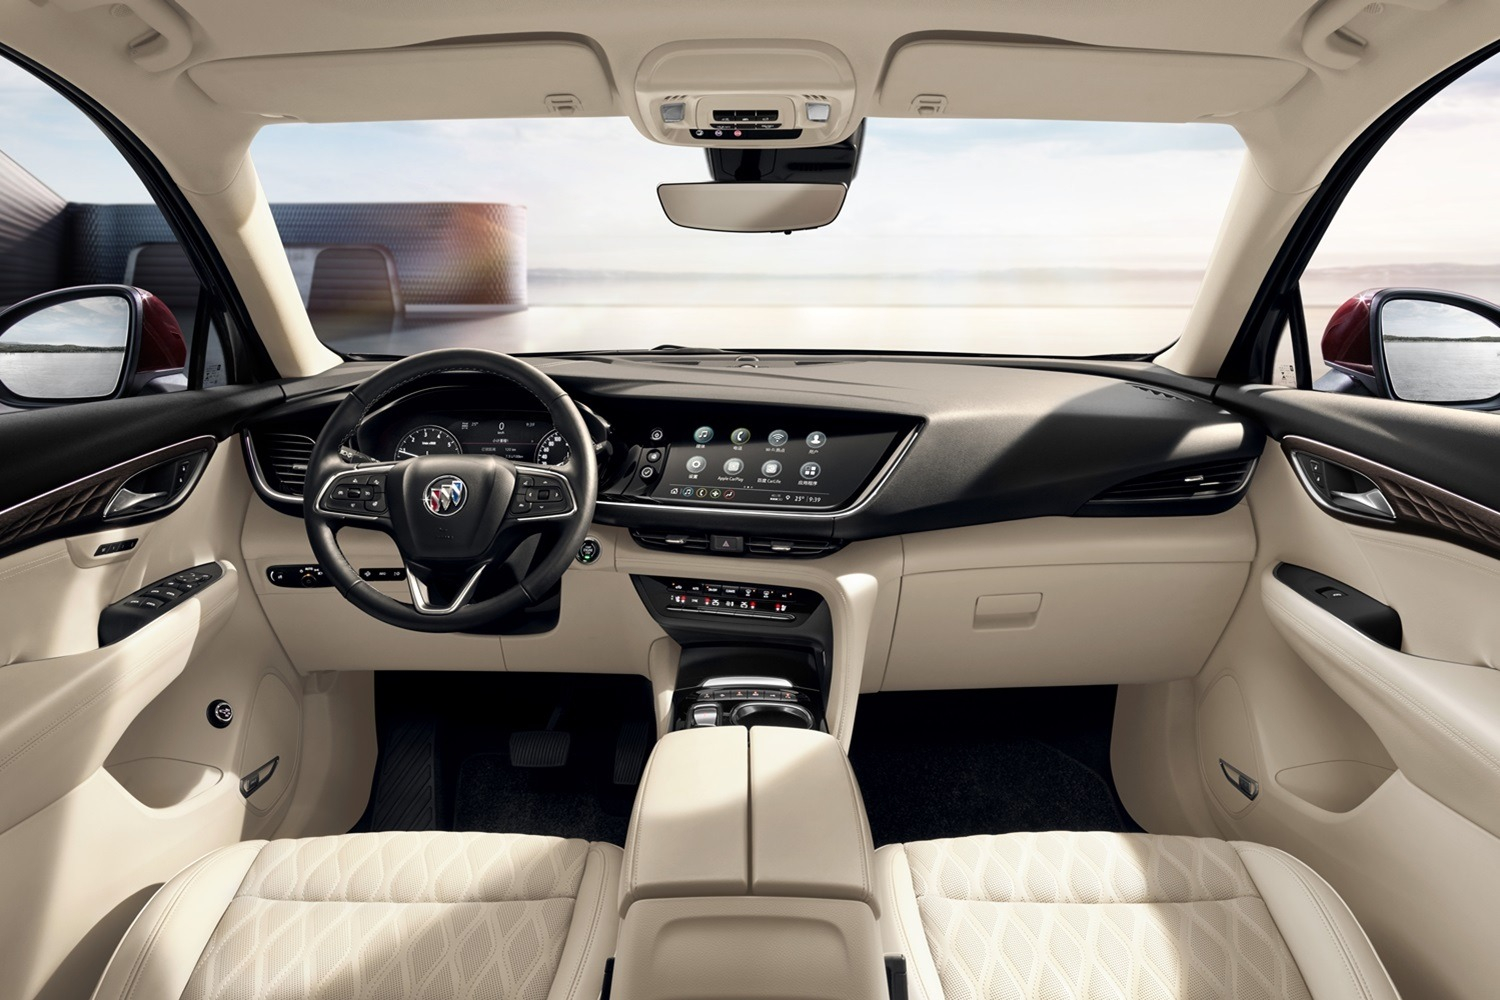 2021 Buick Envision Interior Revealed In Brand New Photos New 2022 Buick Envision Interior Colors, Inventory, Images